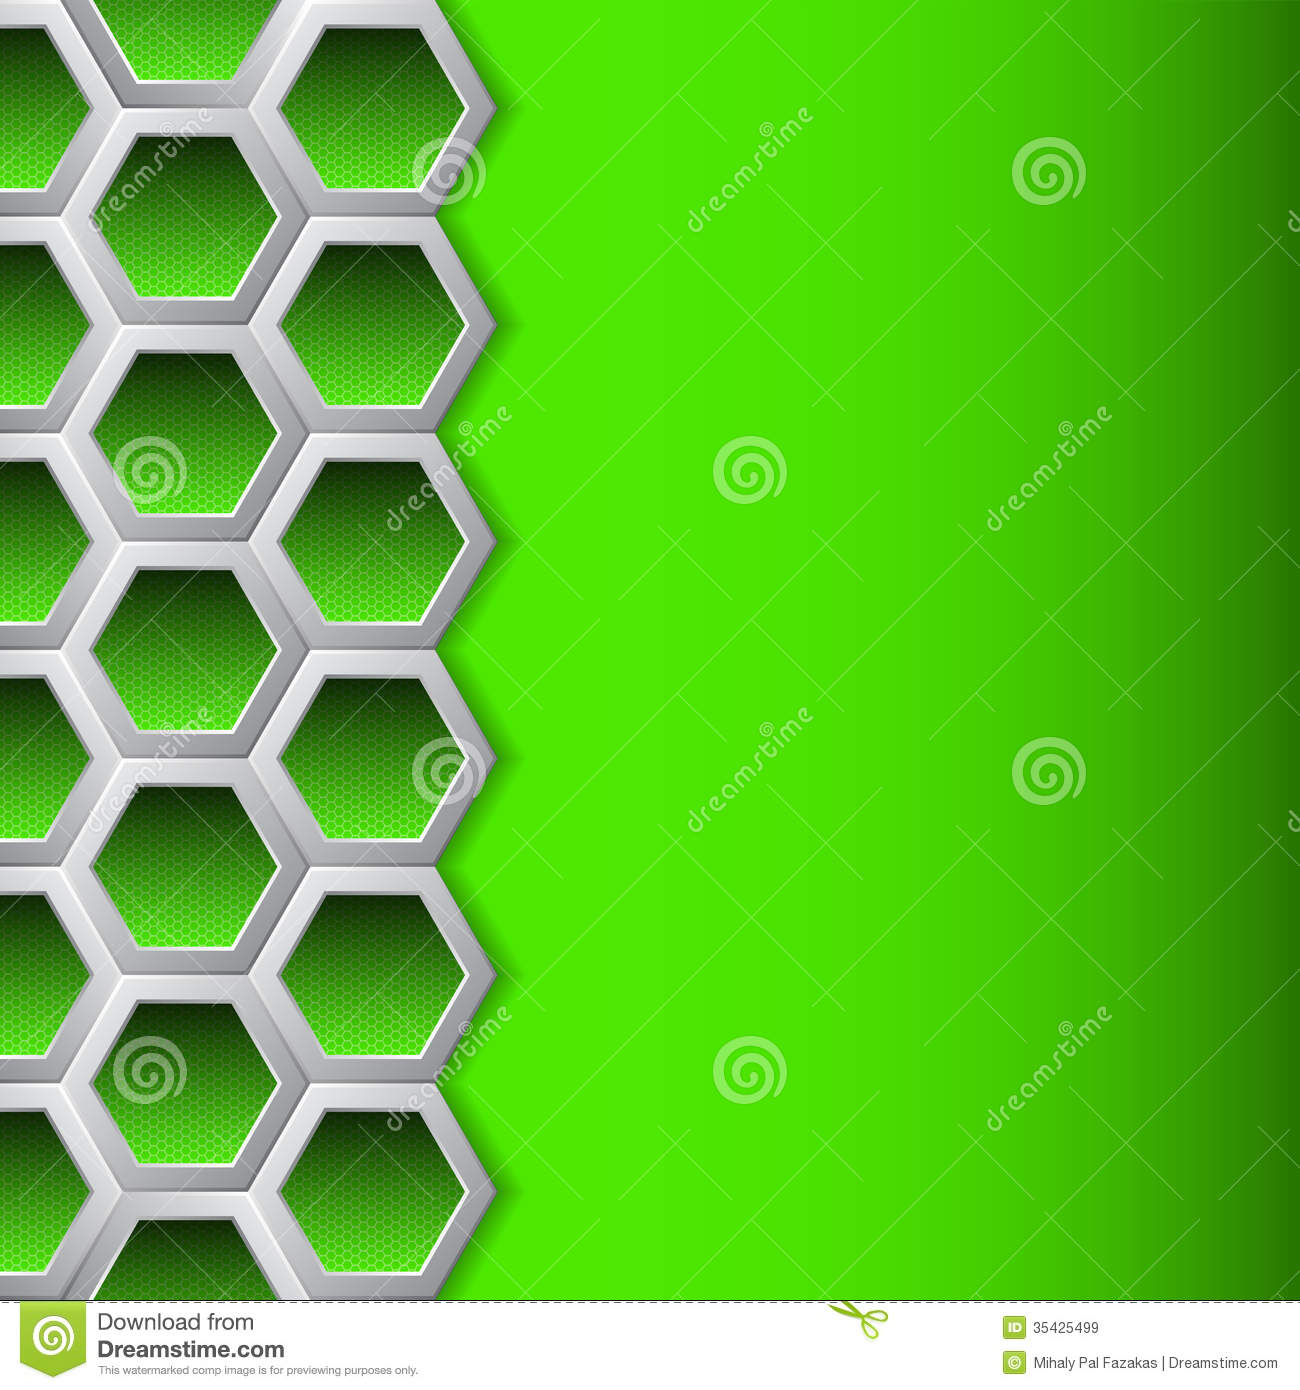 Green hexagons brochure background royalty free stock for Background for brochure design